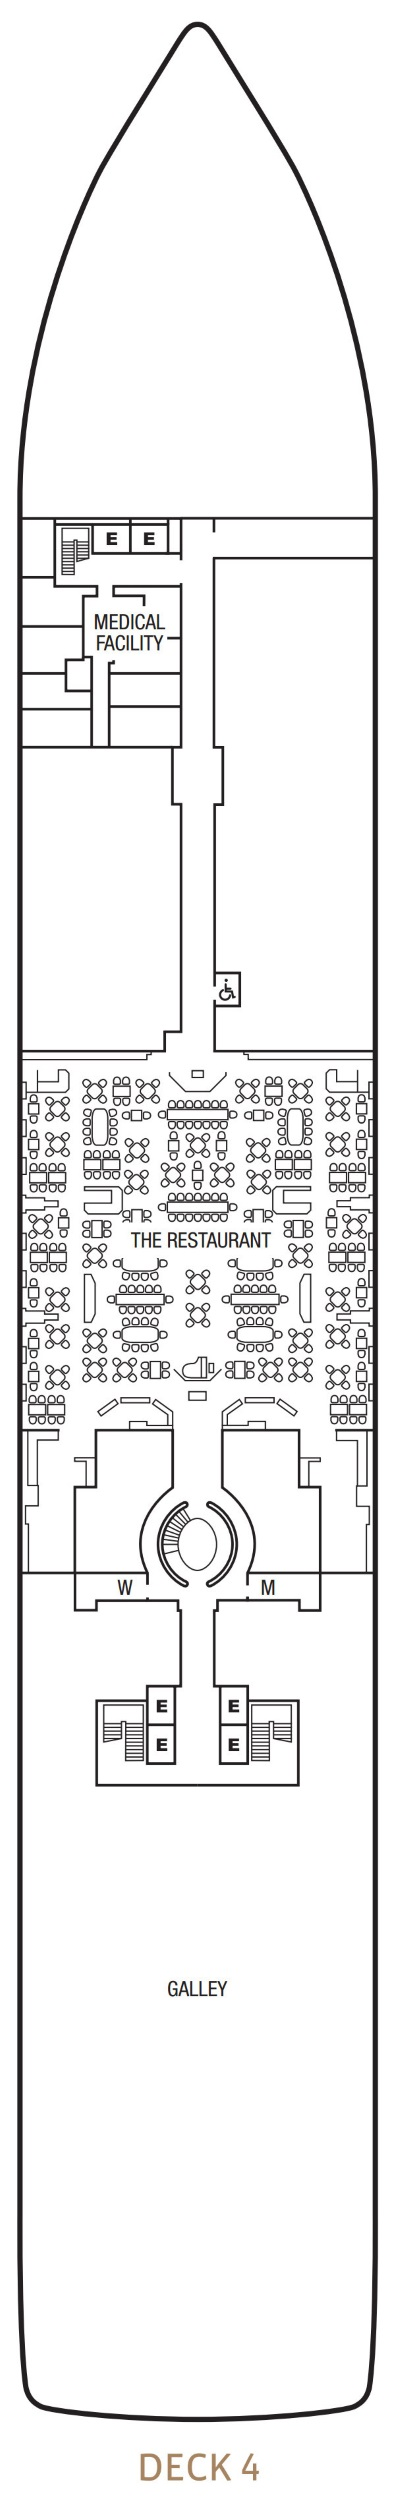 Seabourn Encore Deck 4 layout